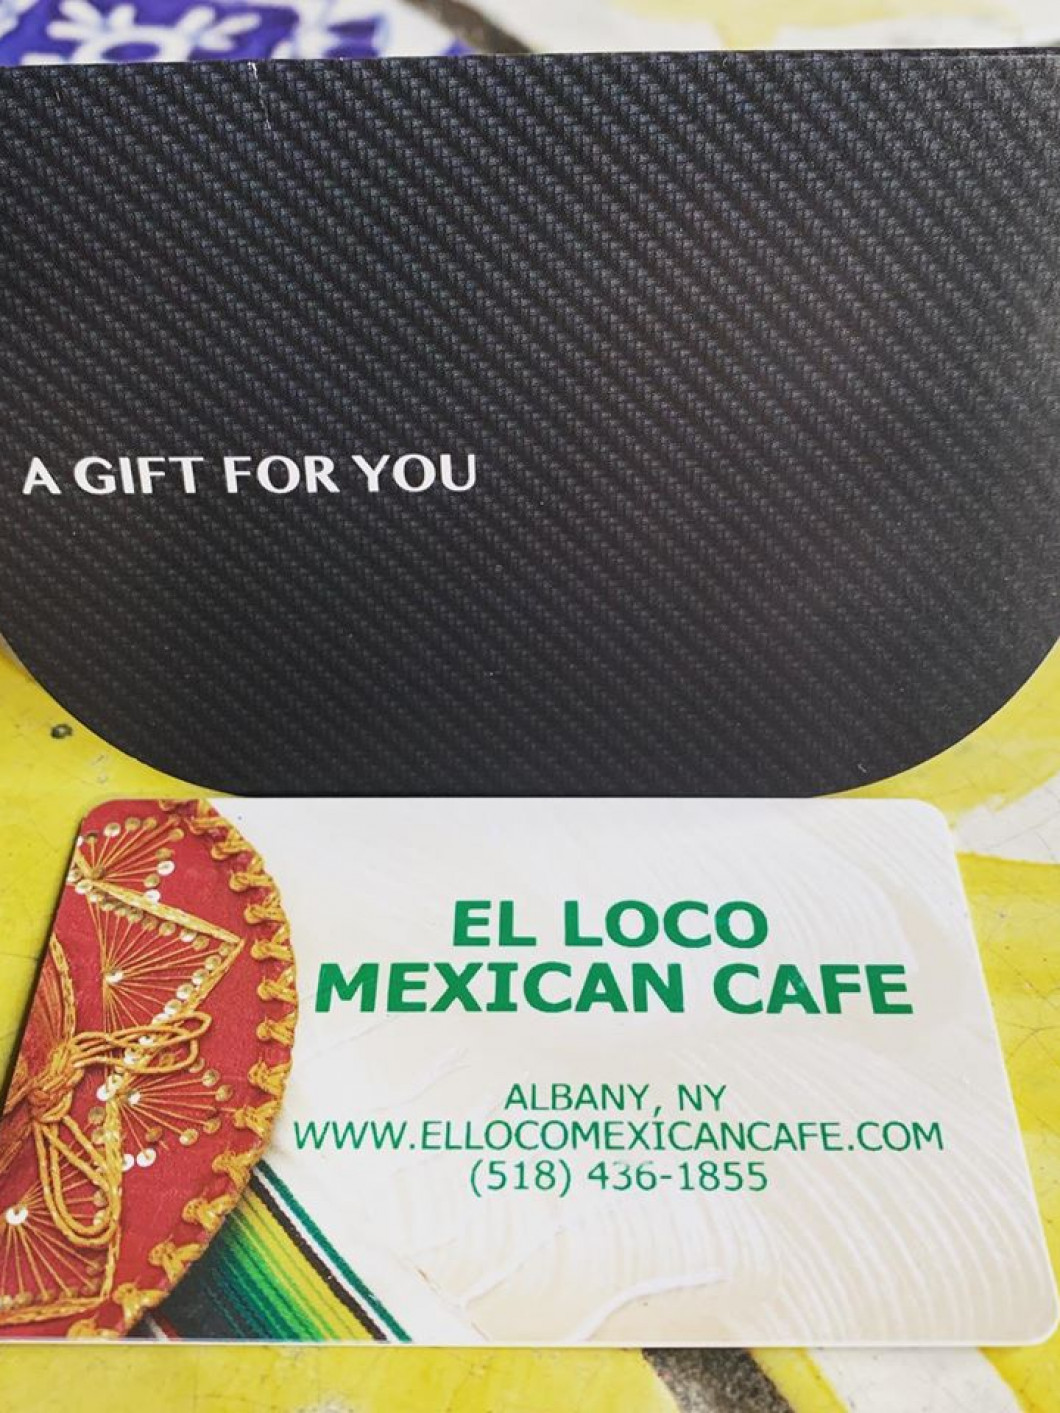 Give the Gift of El Loco!